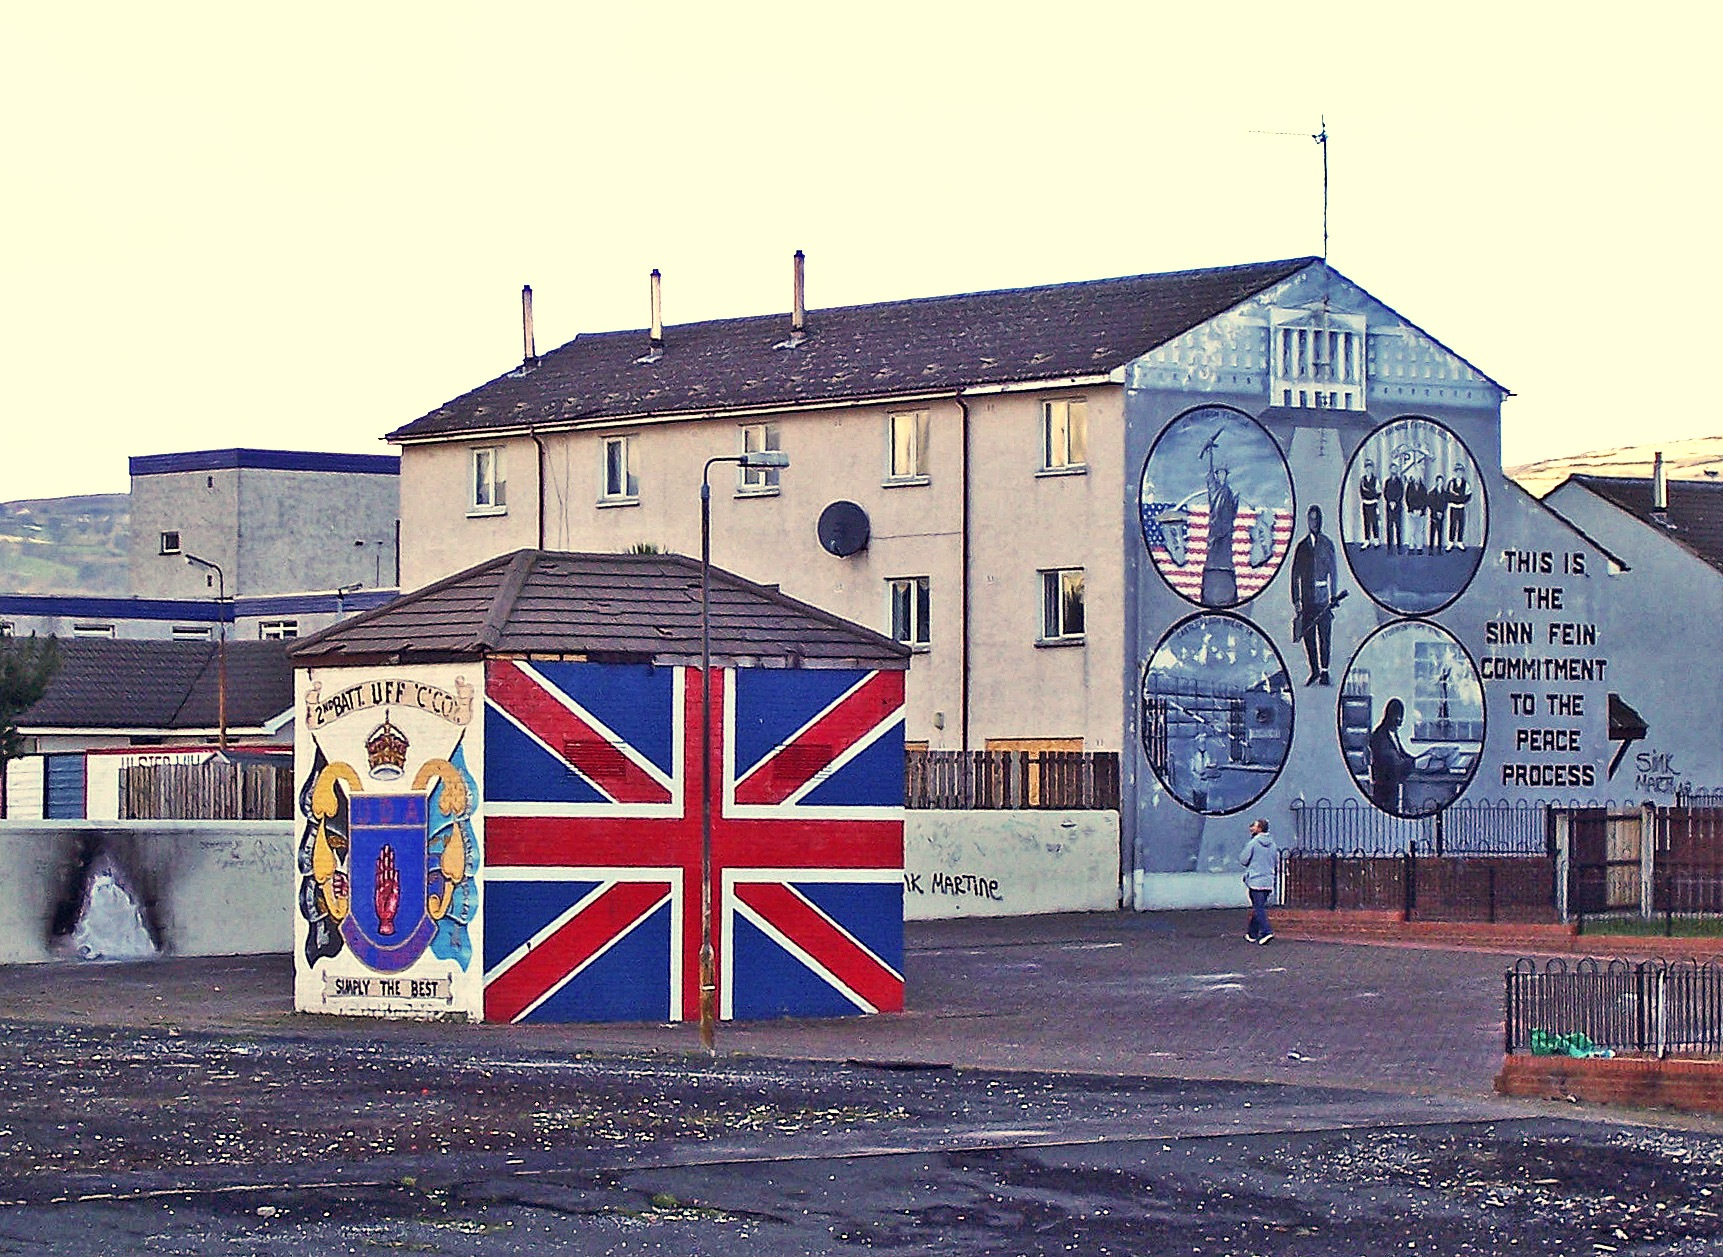 Mural's - An Historical View of Belfast by paul.hosker